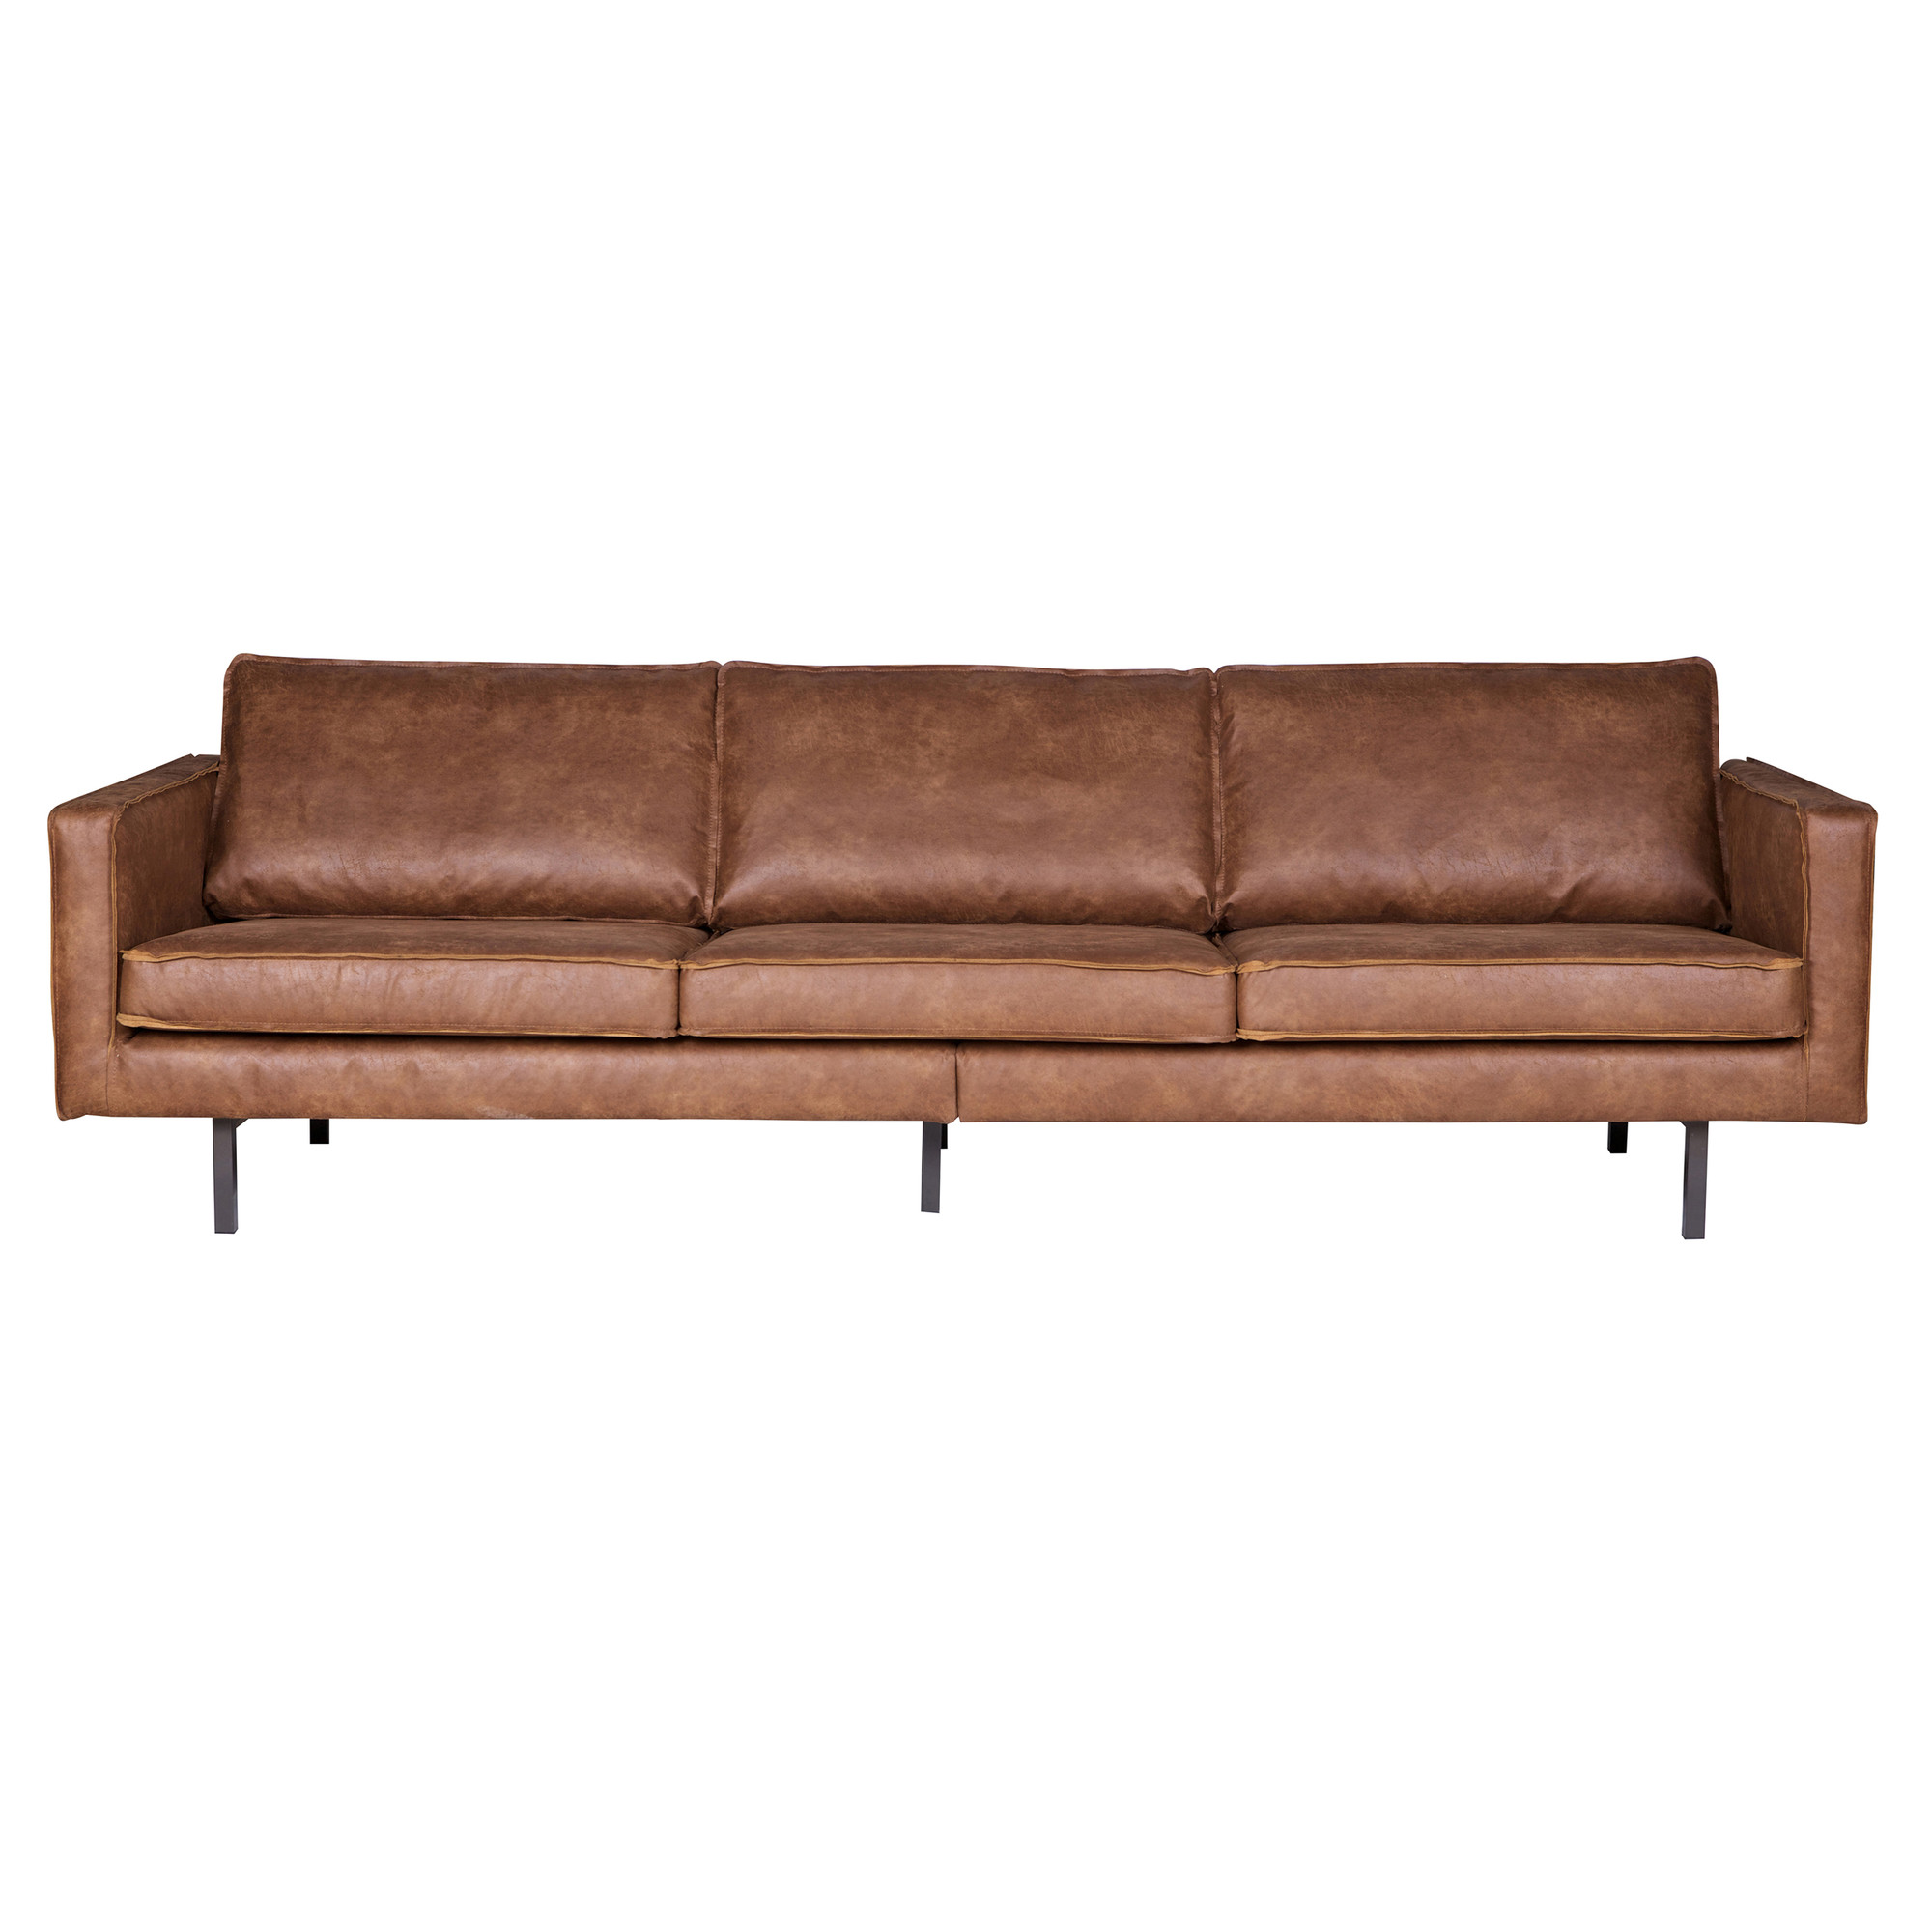 BePureHome Bank 'Rodeo' 3-zits, kleur cognac